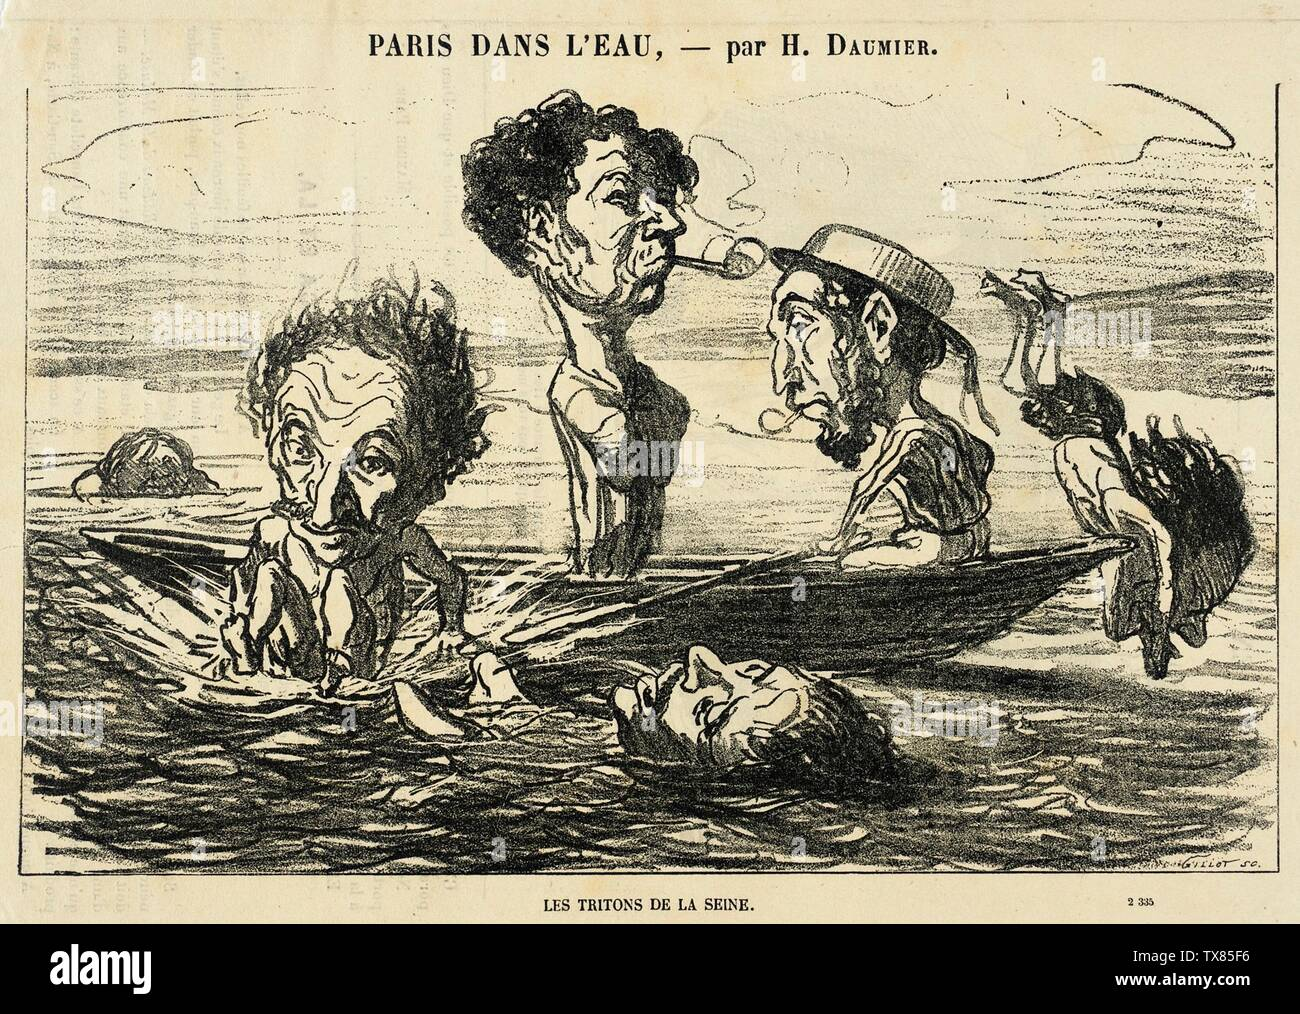 'Les Tritons de la Seine; English:  France, 1864 Series: Paris dans l'eau Periodical: Petit Journal, 9 July 1864 Prints; lithographs Lithograph Sheet: 6 1/16 x 9 3/4 in. (15.4 x 24.77 cm) Gift of Mrs. Florence Victor from The David and Florence Victor Collection (M.91.82.323) Prints and Drawings; 1864date QS:P571,+1864-00-00T00:00:00Z/9; ' - Stock Image